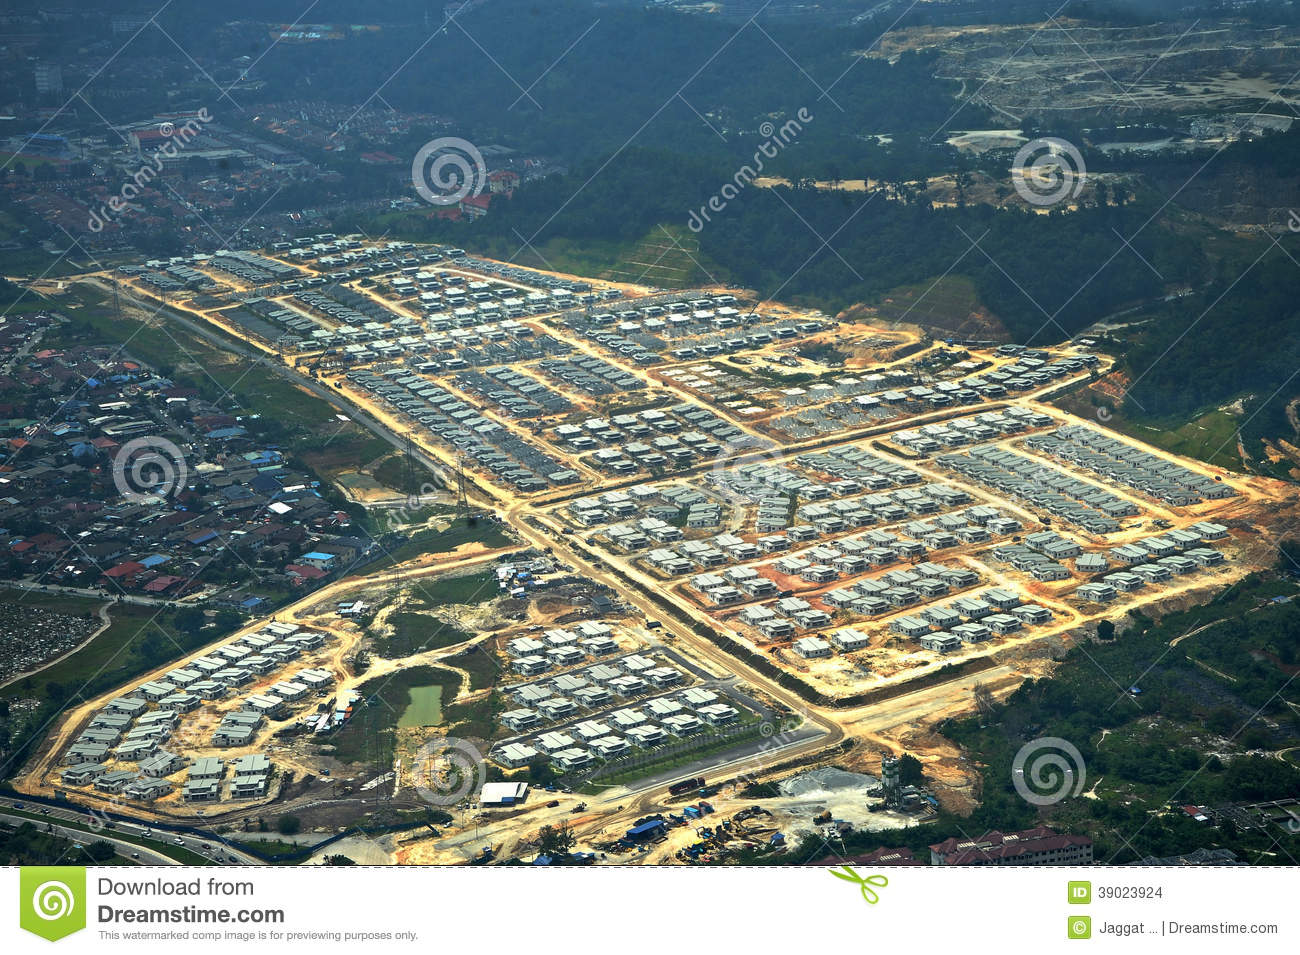 Housing area under constructions